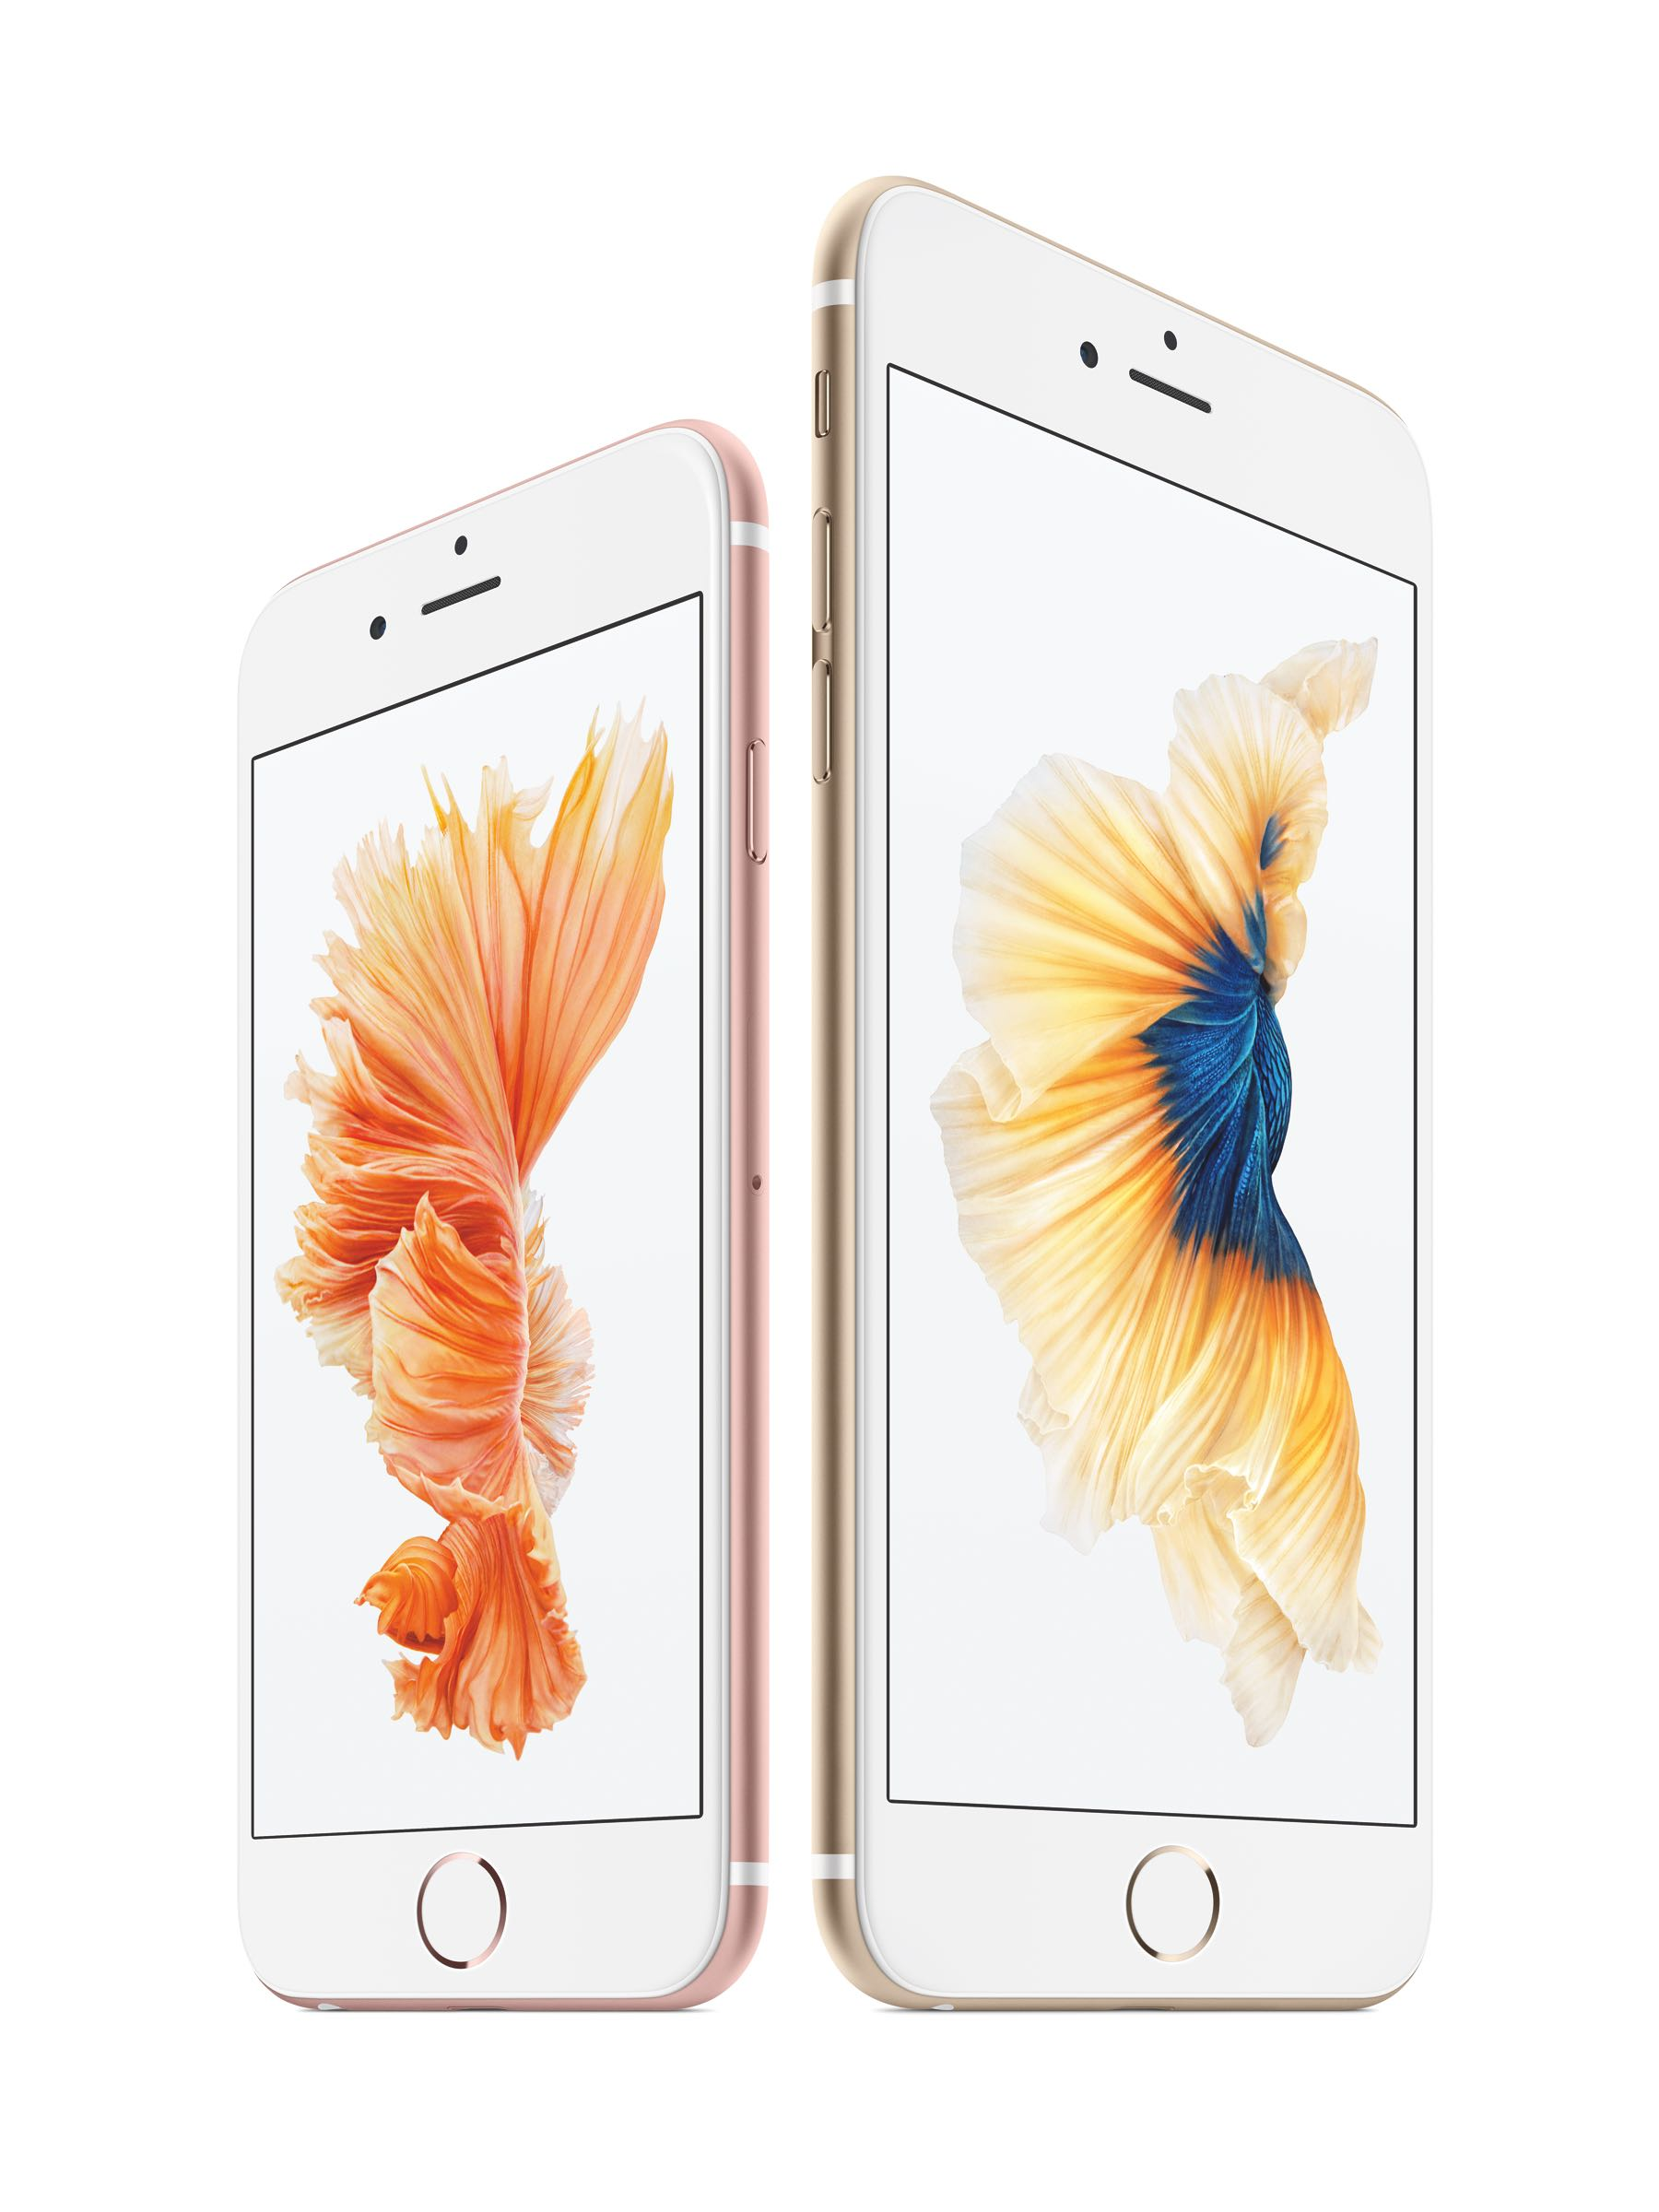 iPhone 6s and 6s Plus - Image Courtesy of Apple